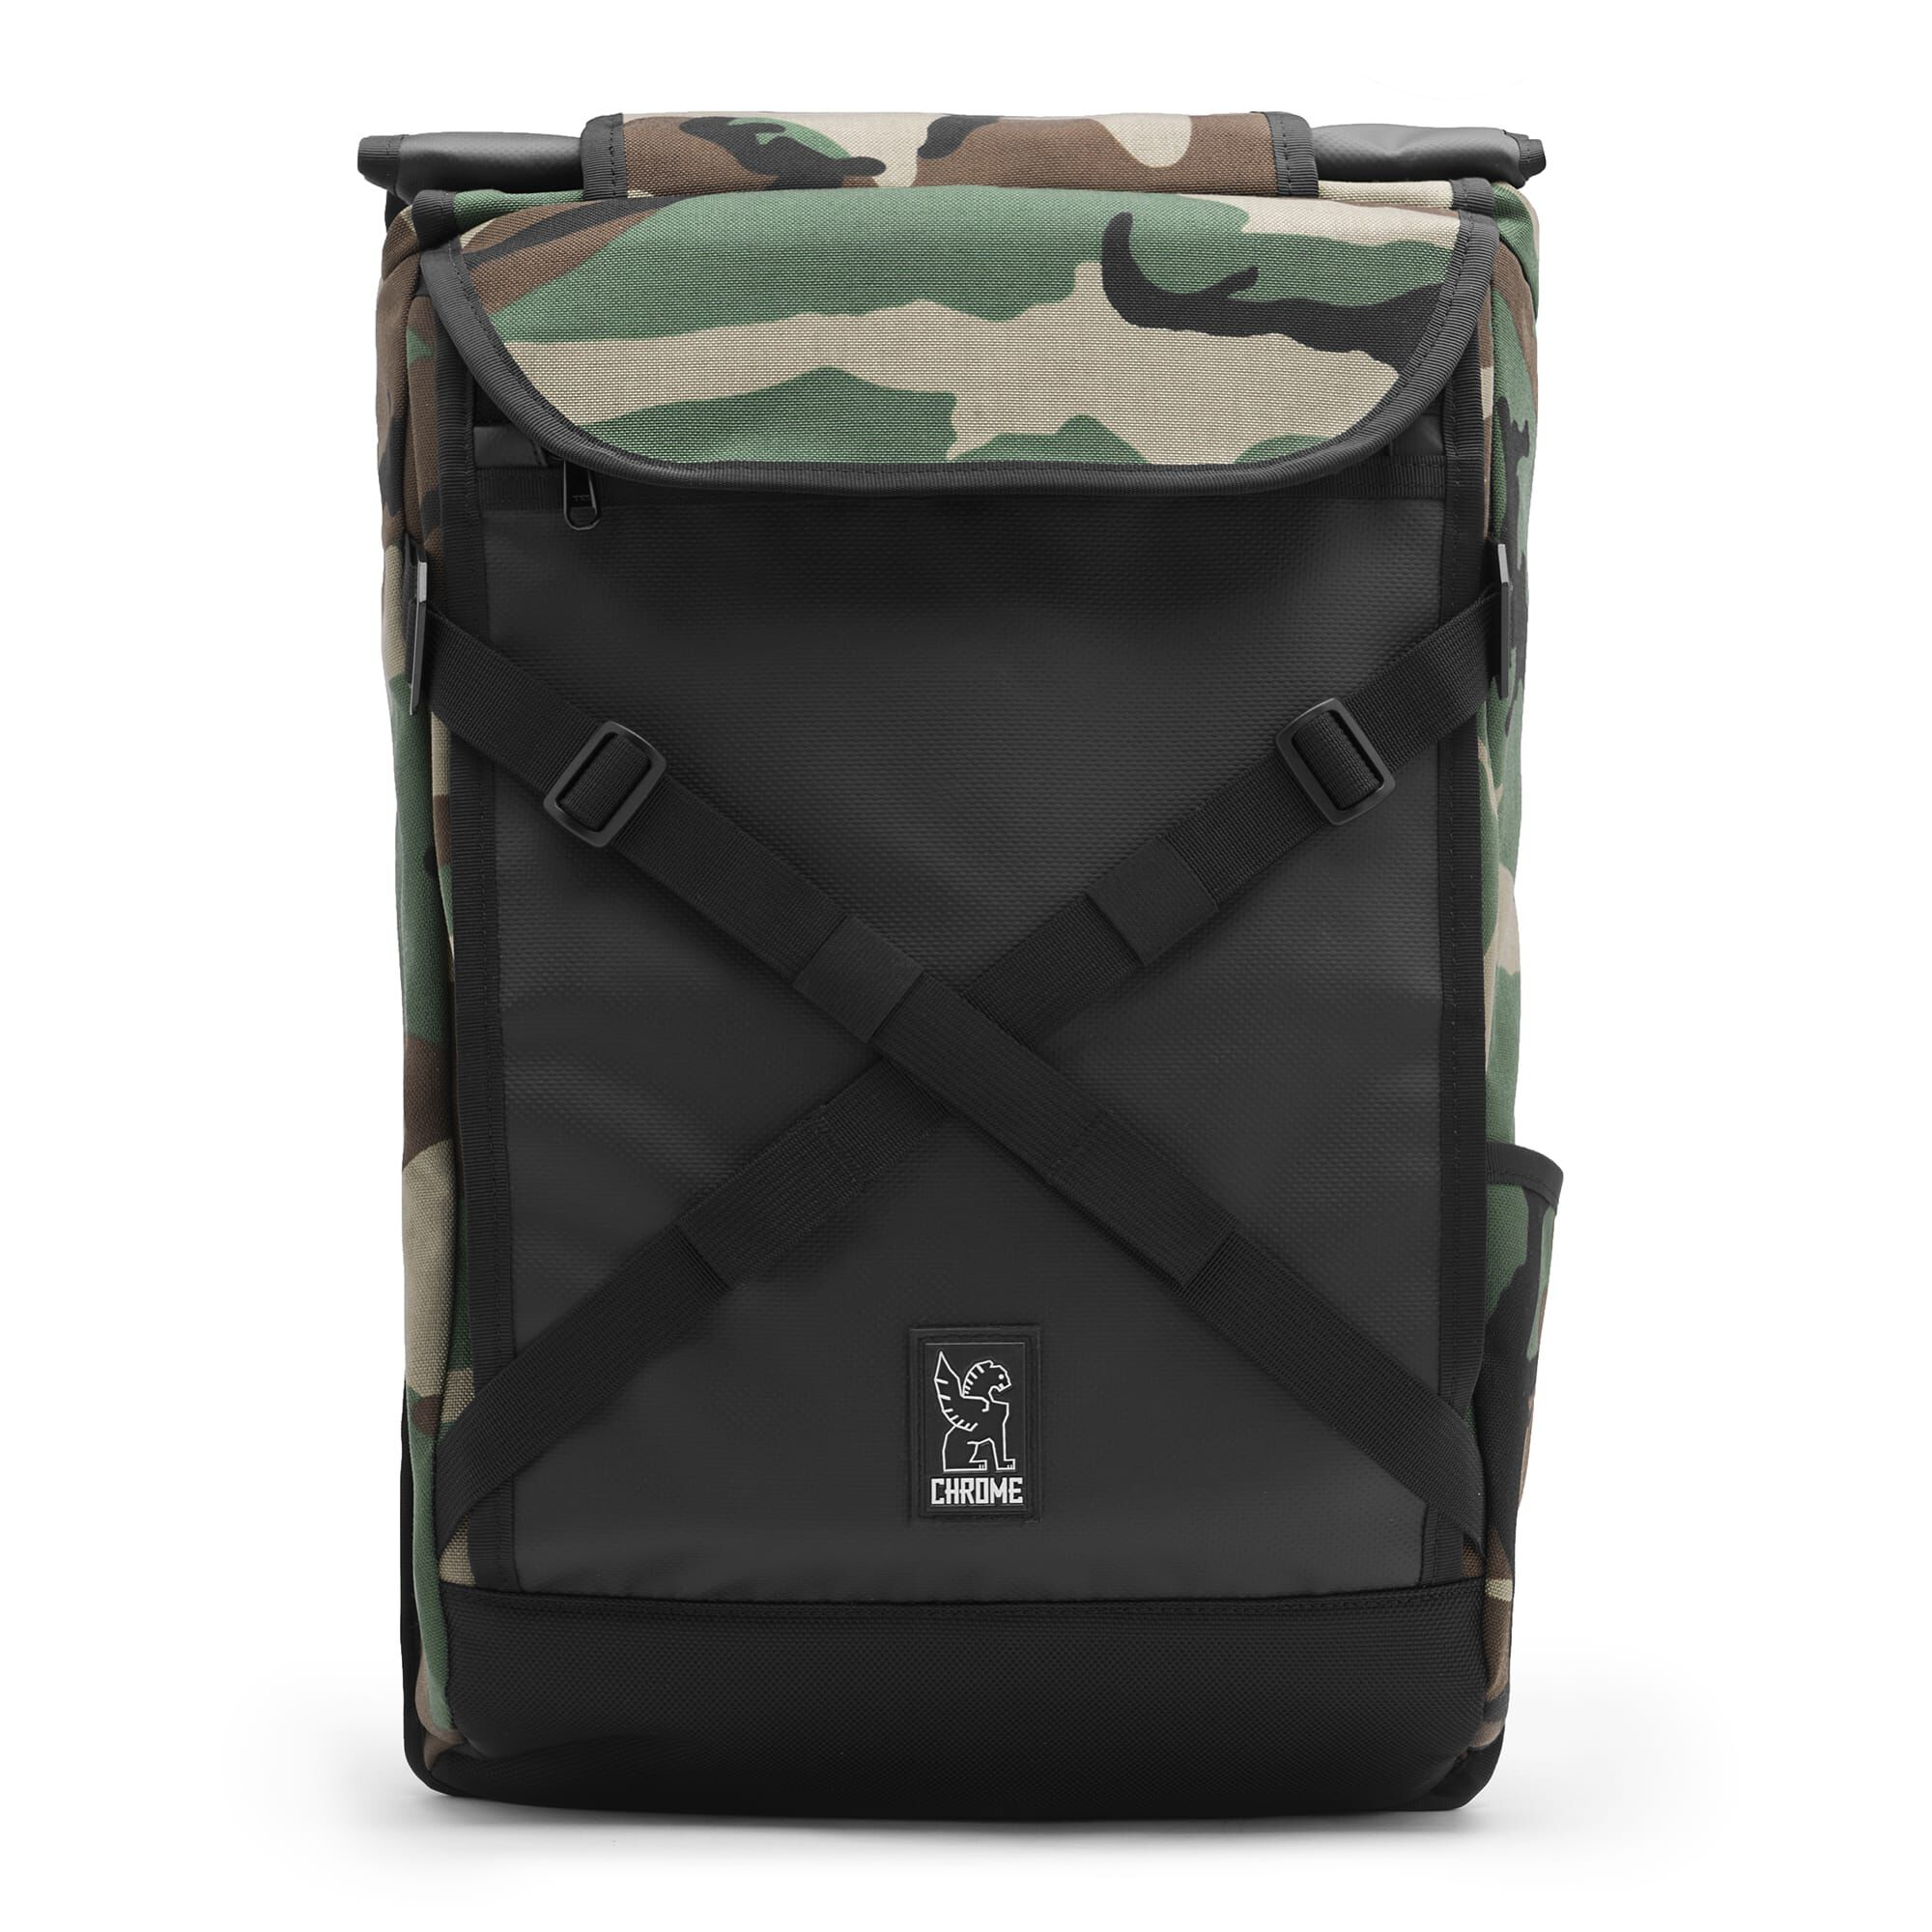 19a3a632c4 Bravo 2.0 Backpack - Fits laptops up to 15